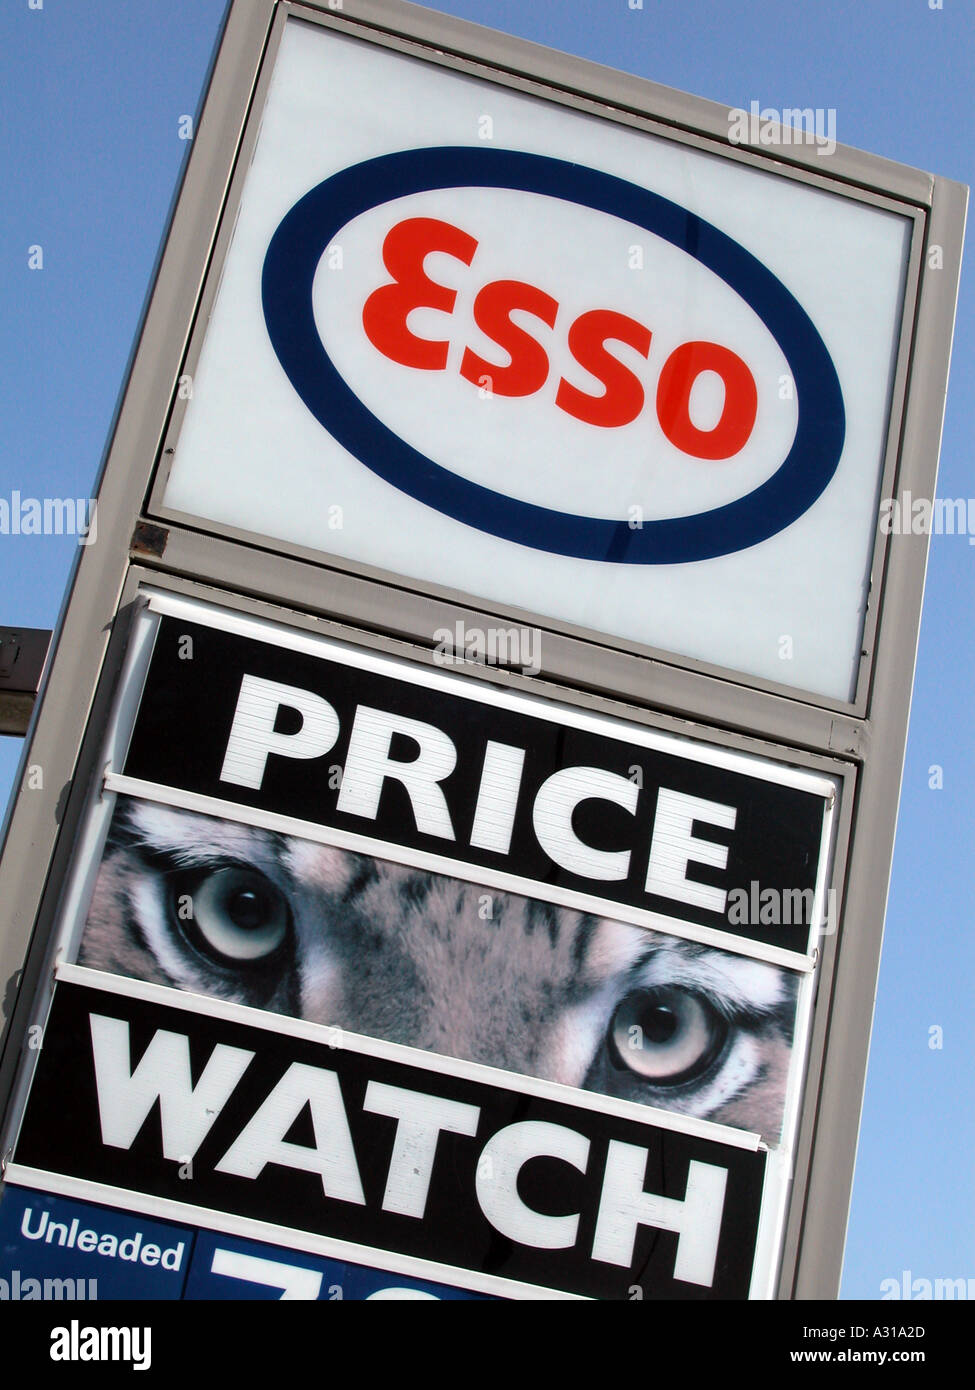 Esso Petrol Station corporate branding sign, East London, 2002. - Stock Image